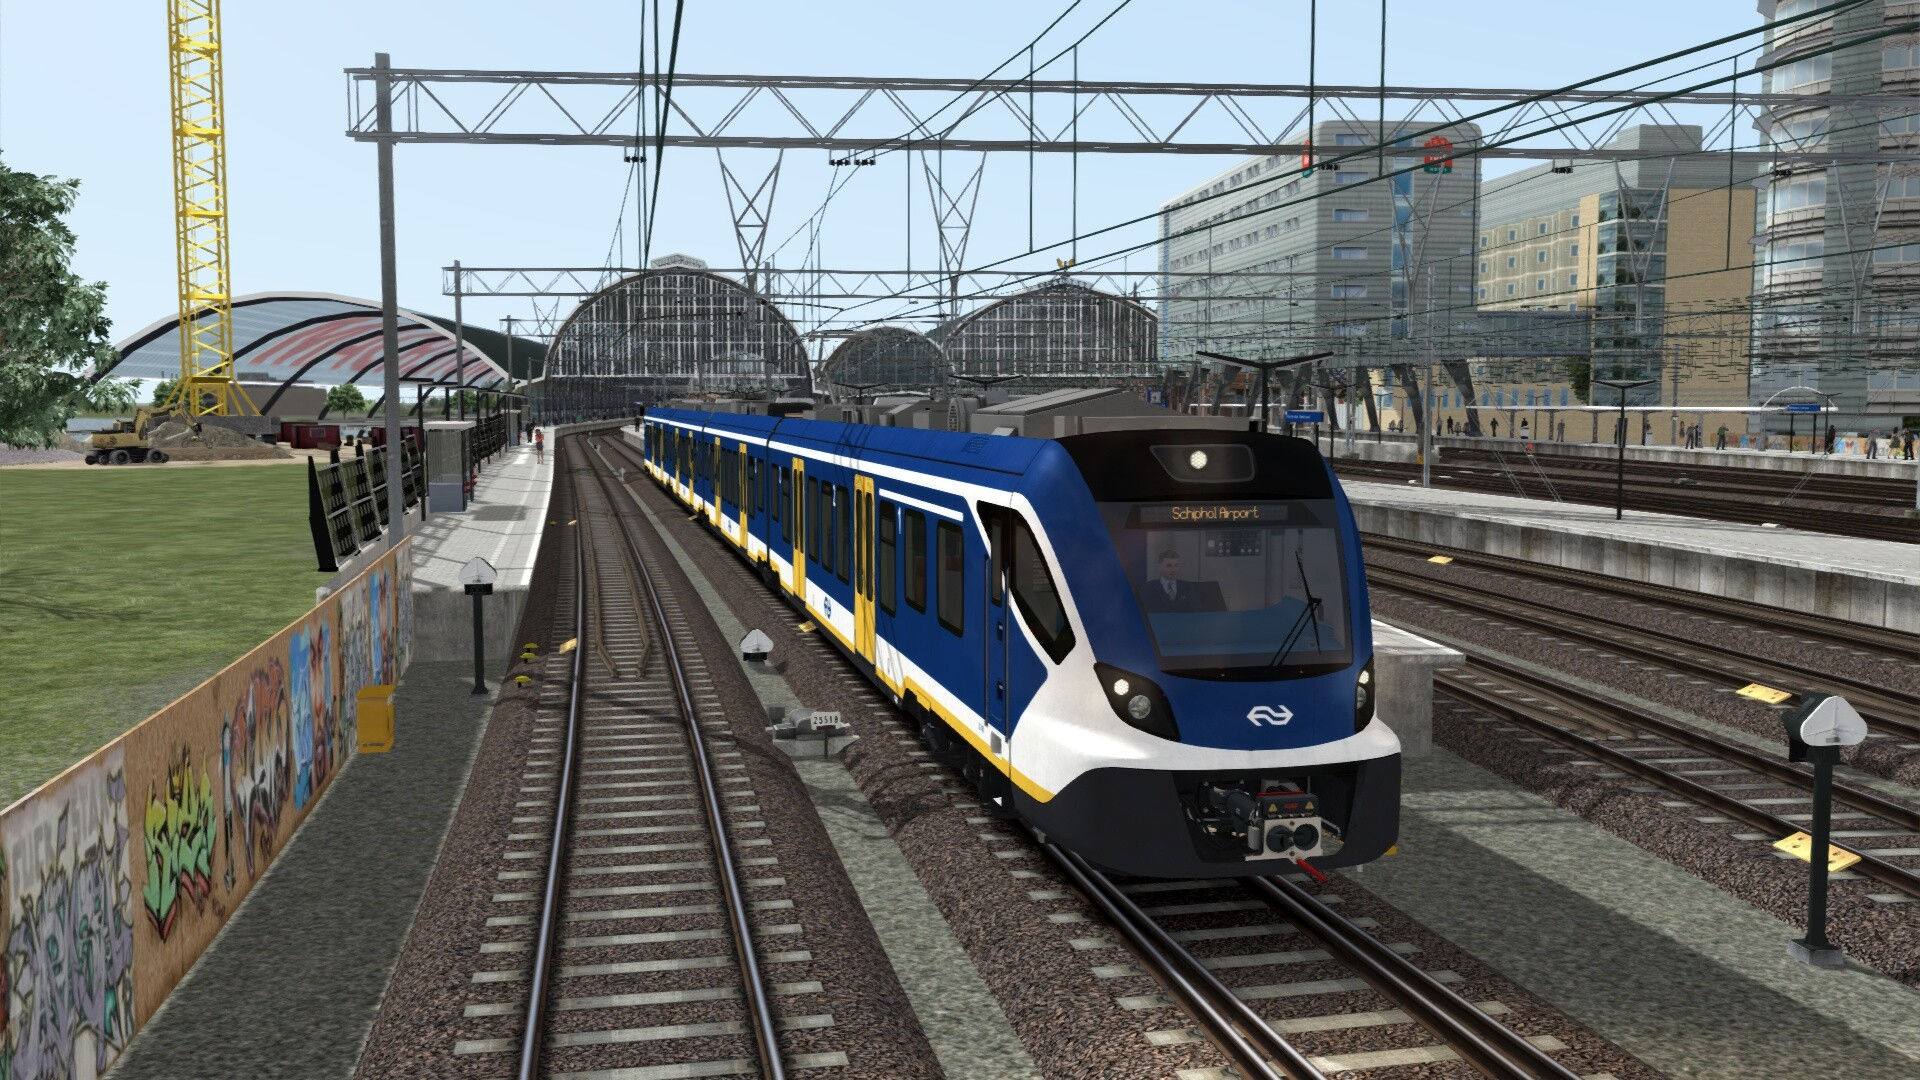 SNG Sprinter New Generation, Dutch National Railways